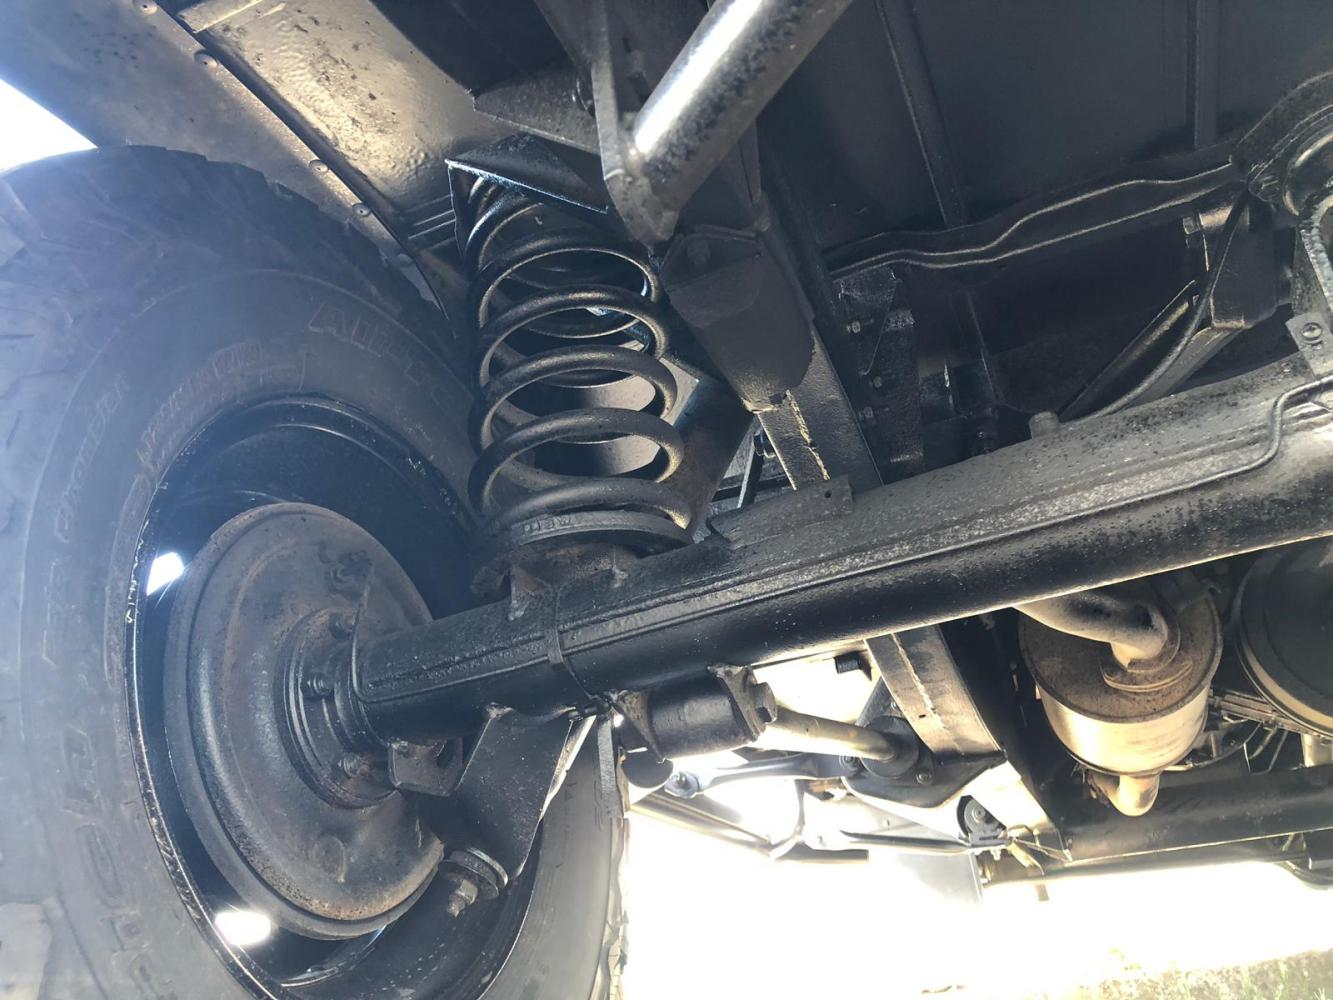 Click image for larger version  Name:Under rear left axle.jpg Views:40 Size:155.6 KB ID:419038